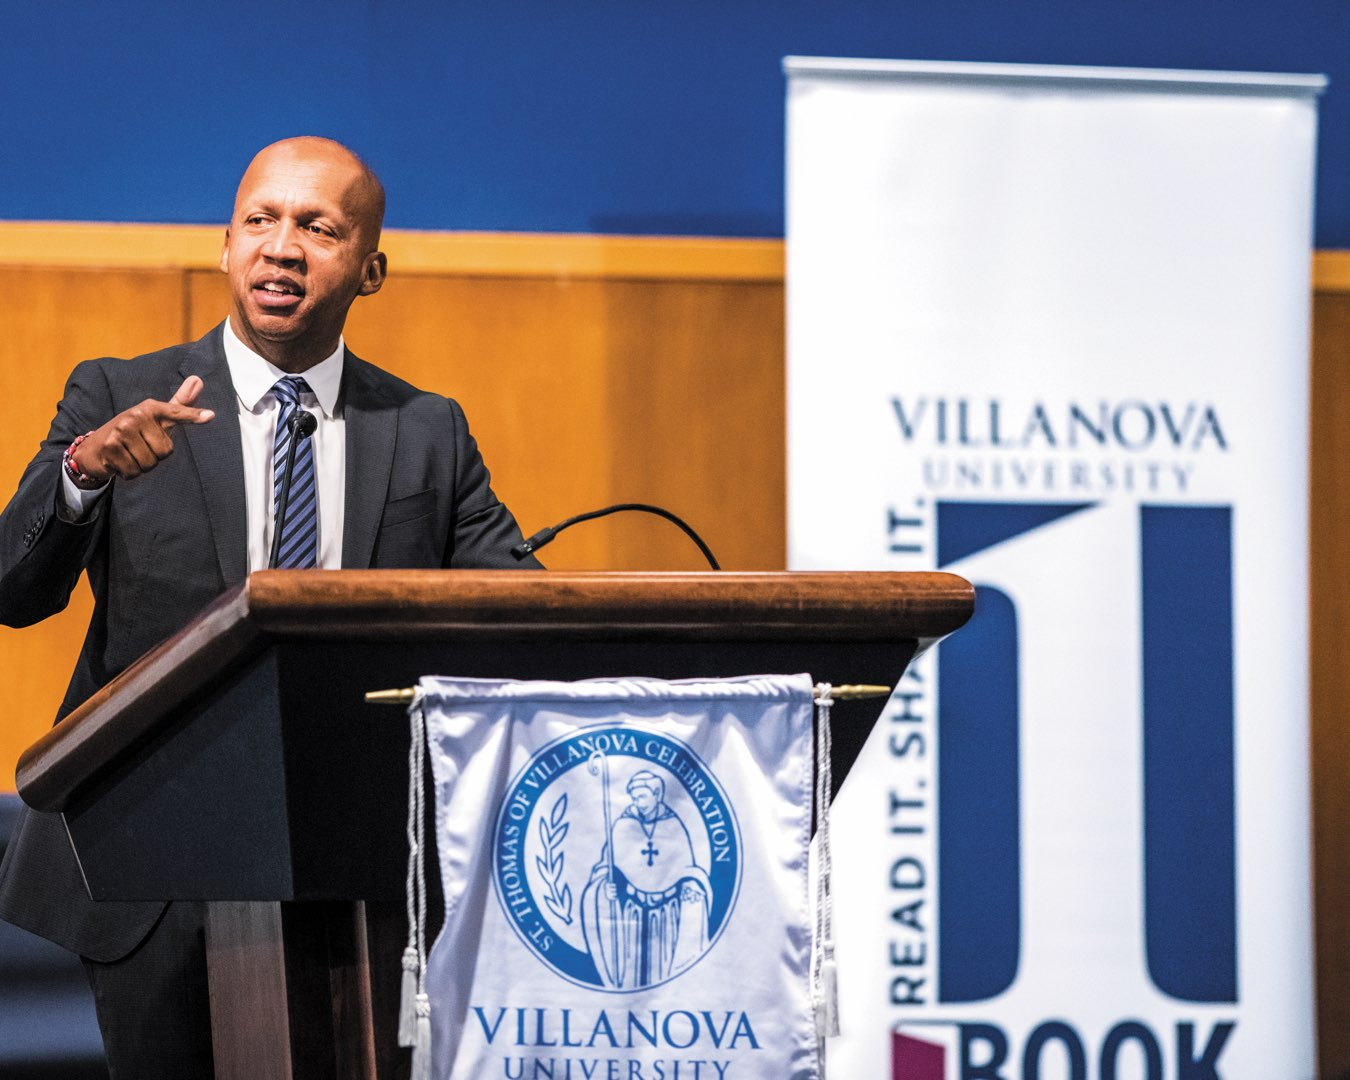 Adela Dwyer-St. Thomas of Villanova Peace Award recipient Bryan Stevenson in a suit speaking at a podium